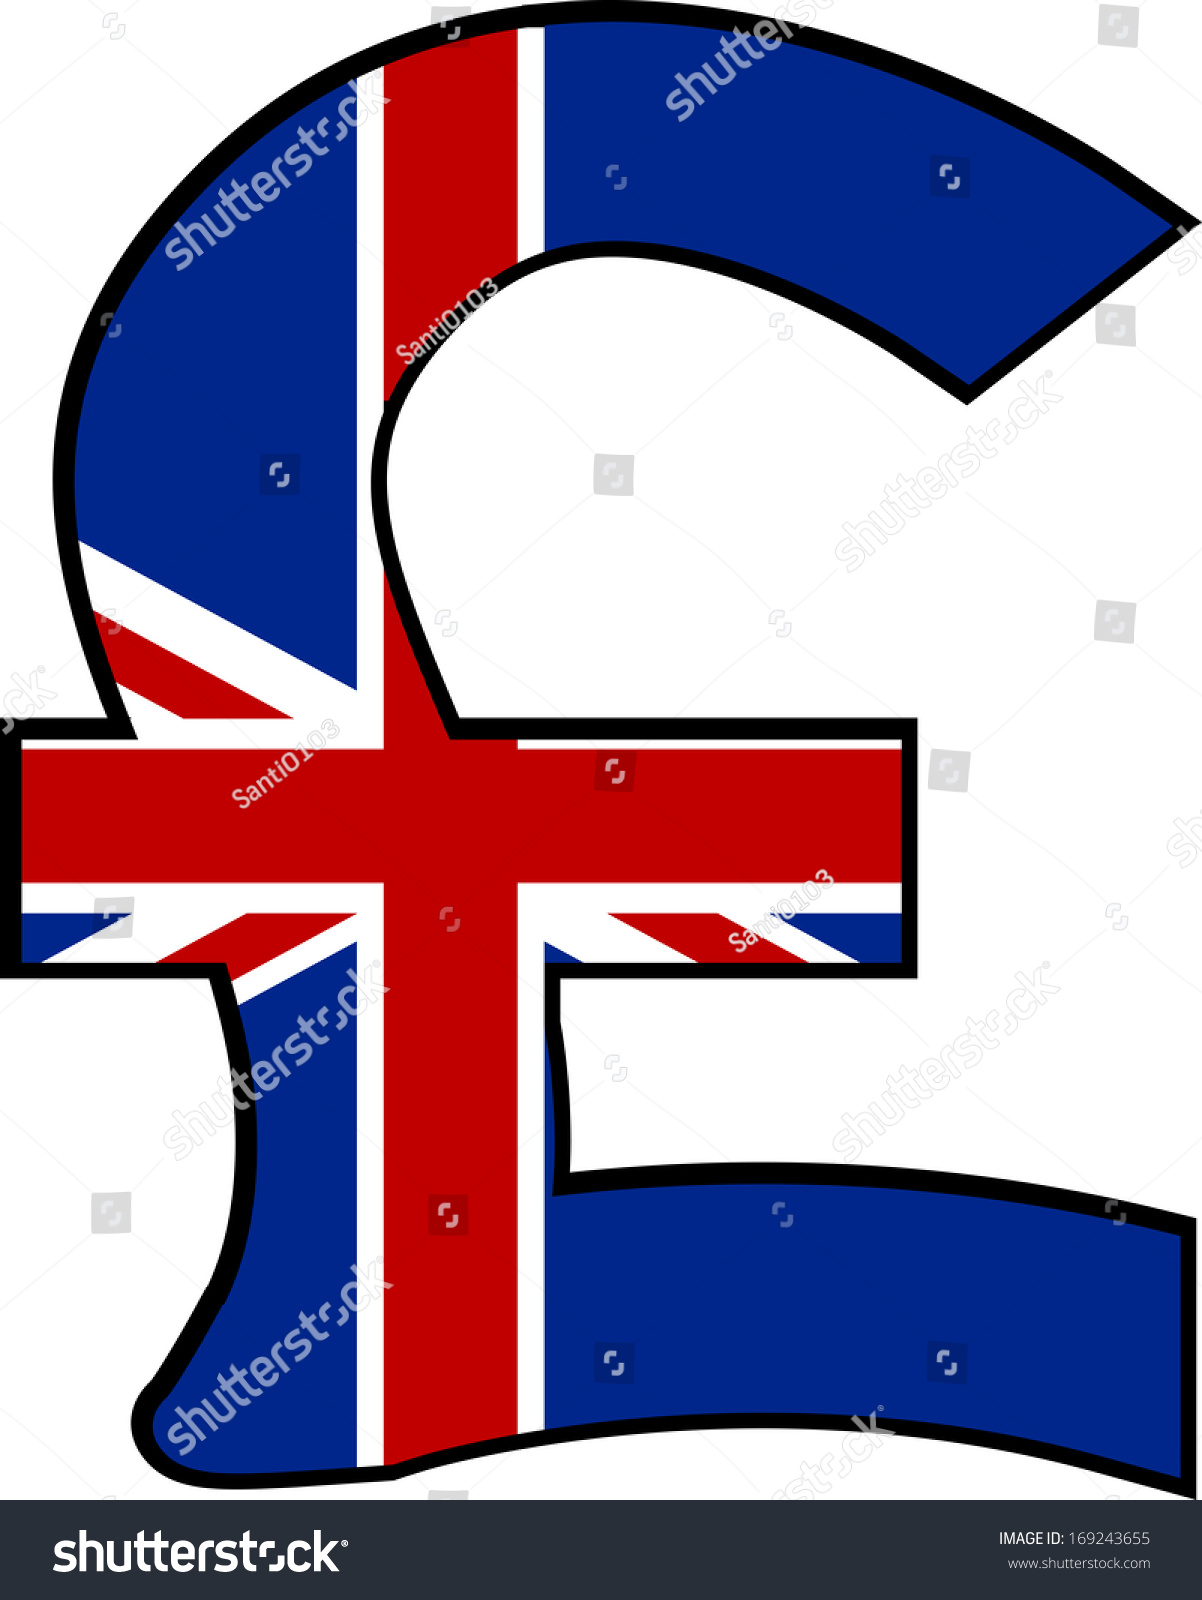 British currency symbols image collections symbols and meanings gbp great britain currency symbol raster stock illustration great britain currency symbol raster biocorpaavc buycottarizona Choice Image